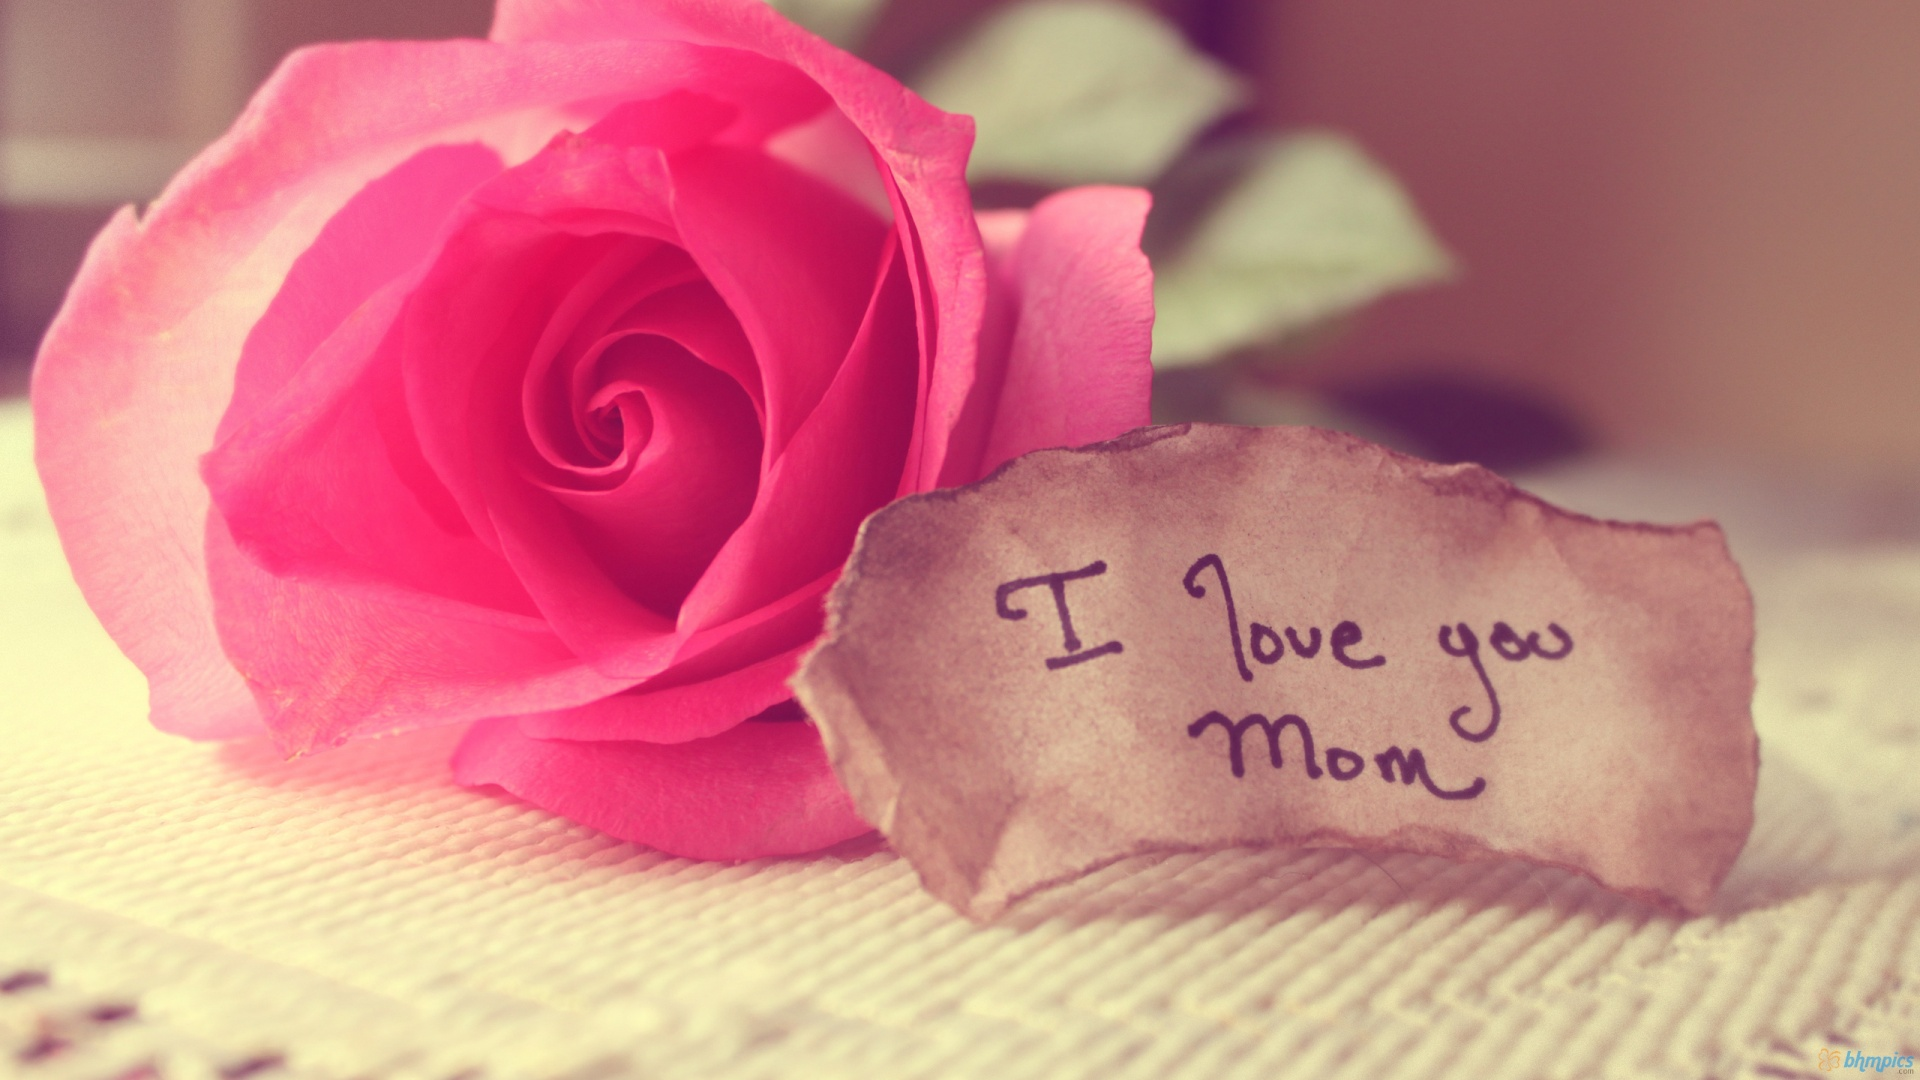 Free Download Download Mothers Day I Love You Mom Wallpaper Hd